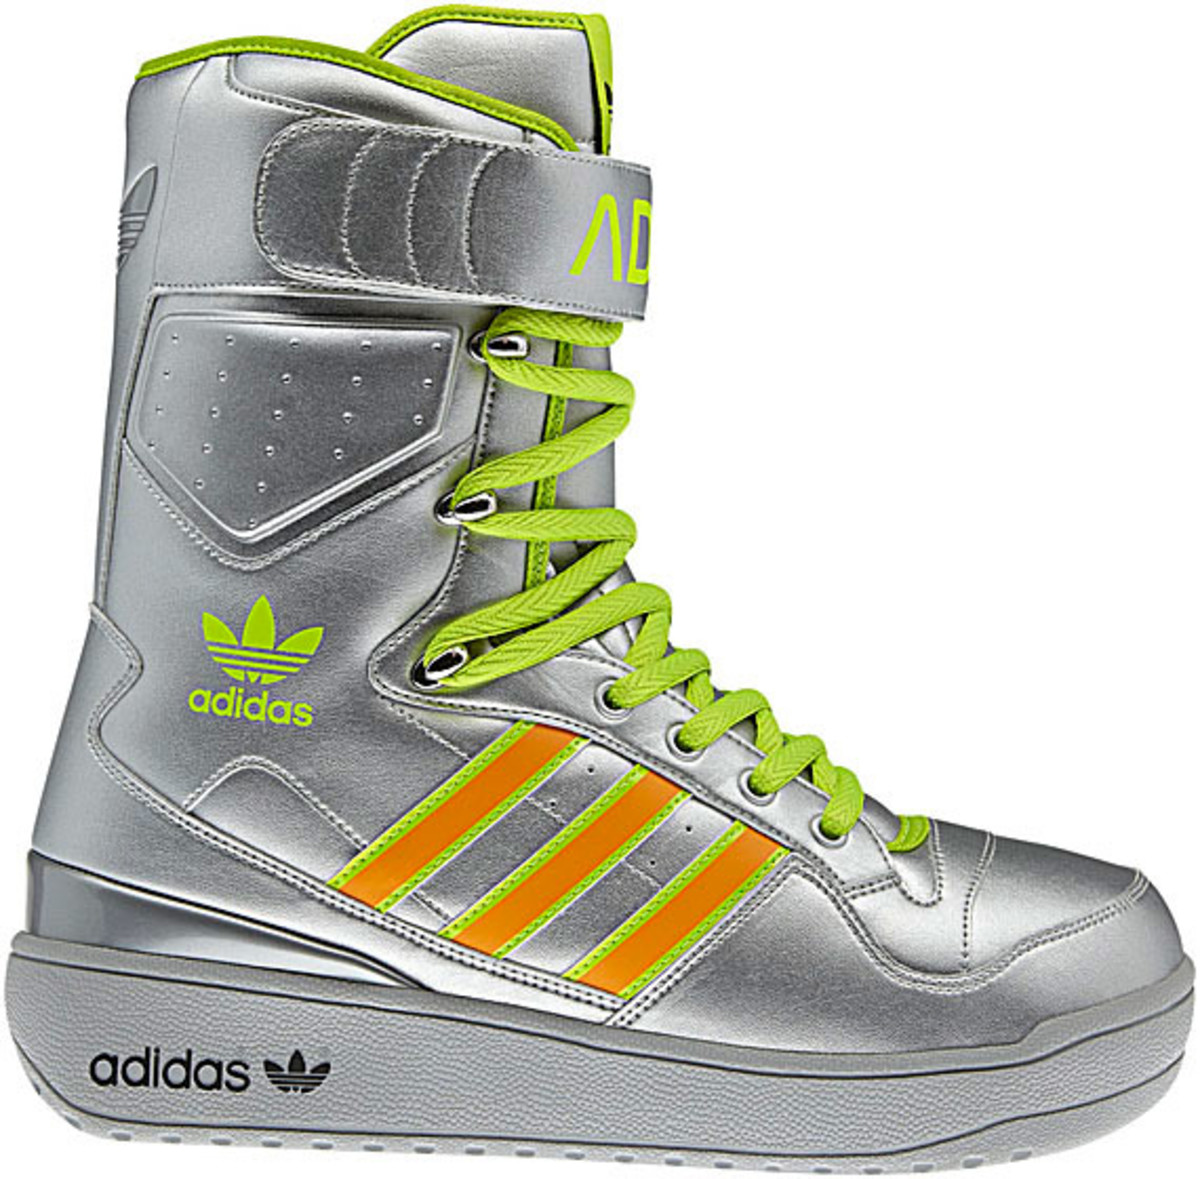 adidas-originals-jeremy-scott-footwear-collection-fall-winter-2012-20